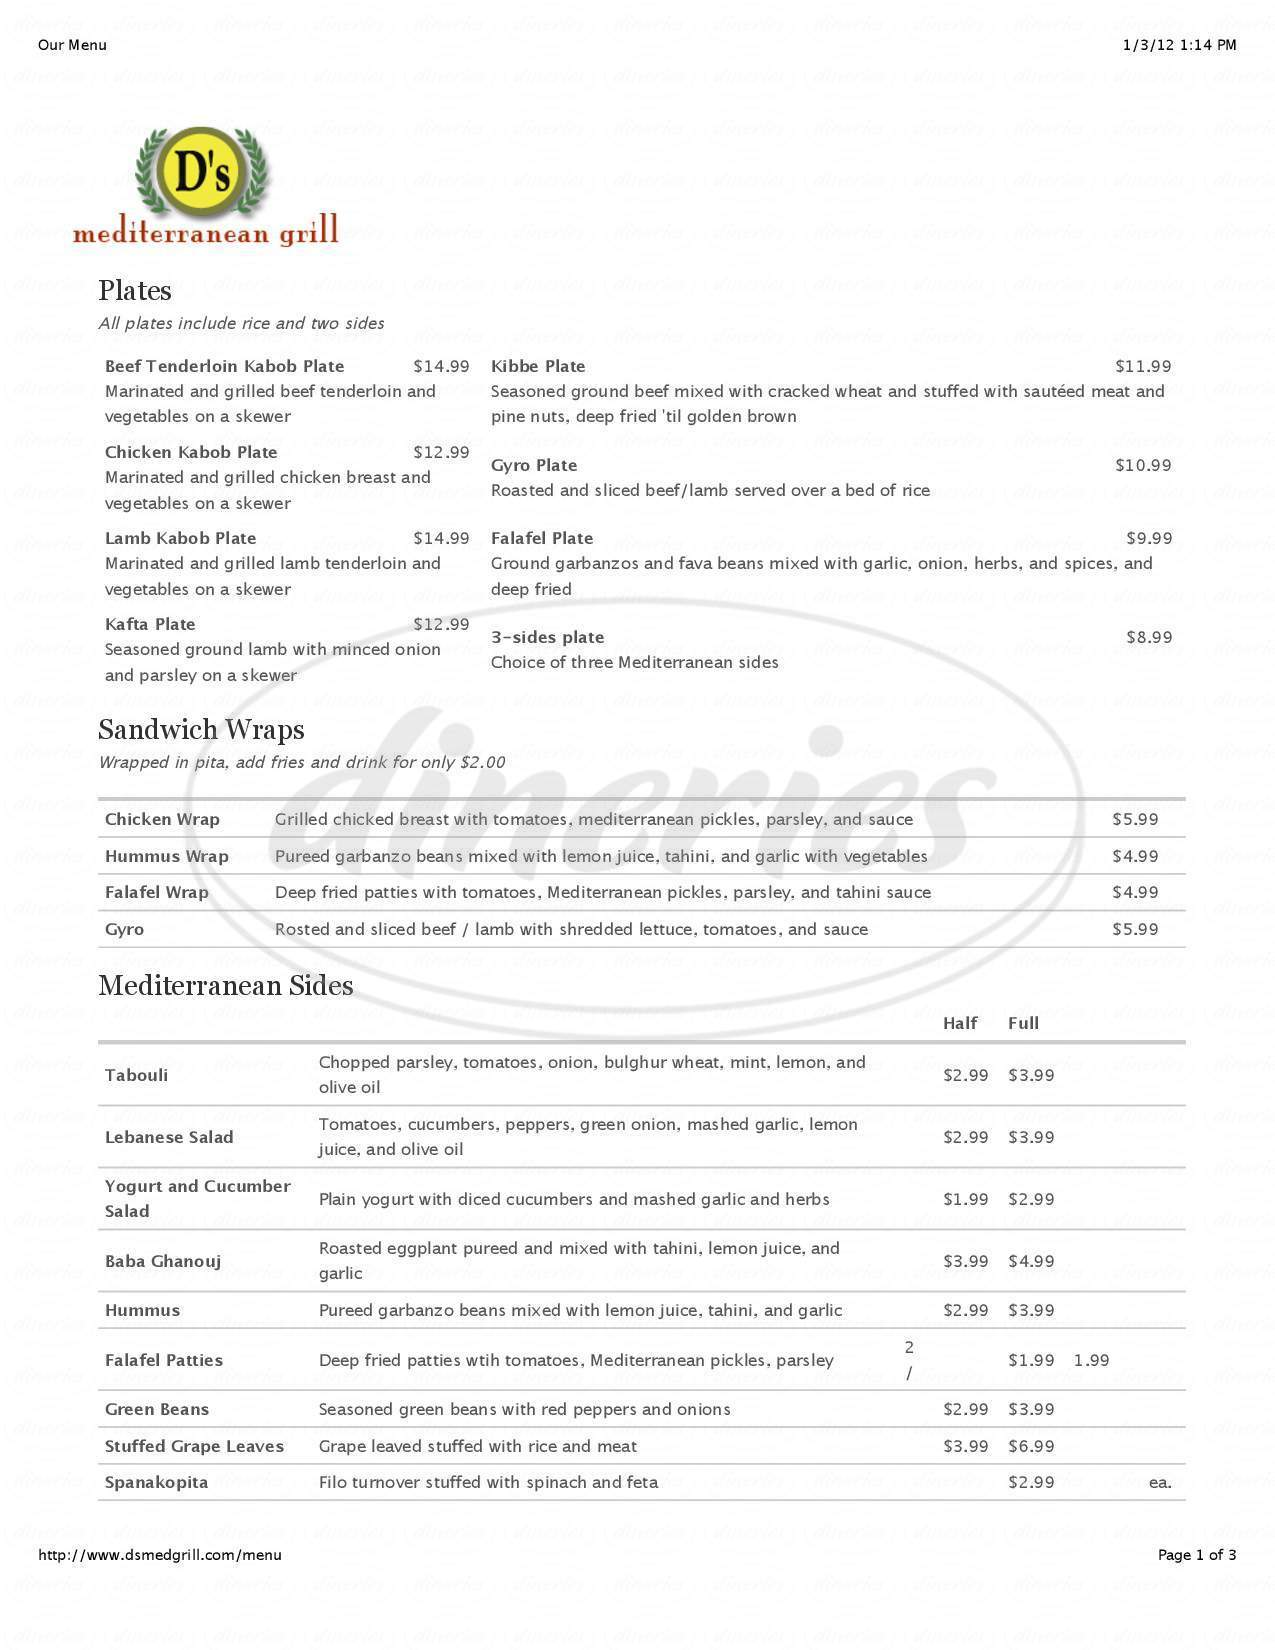 menu for D's Mediterranean Grill